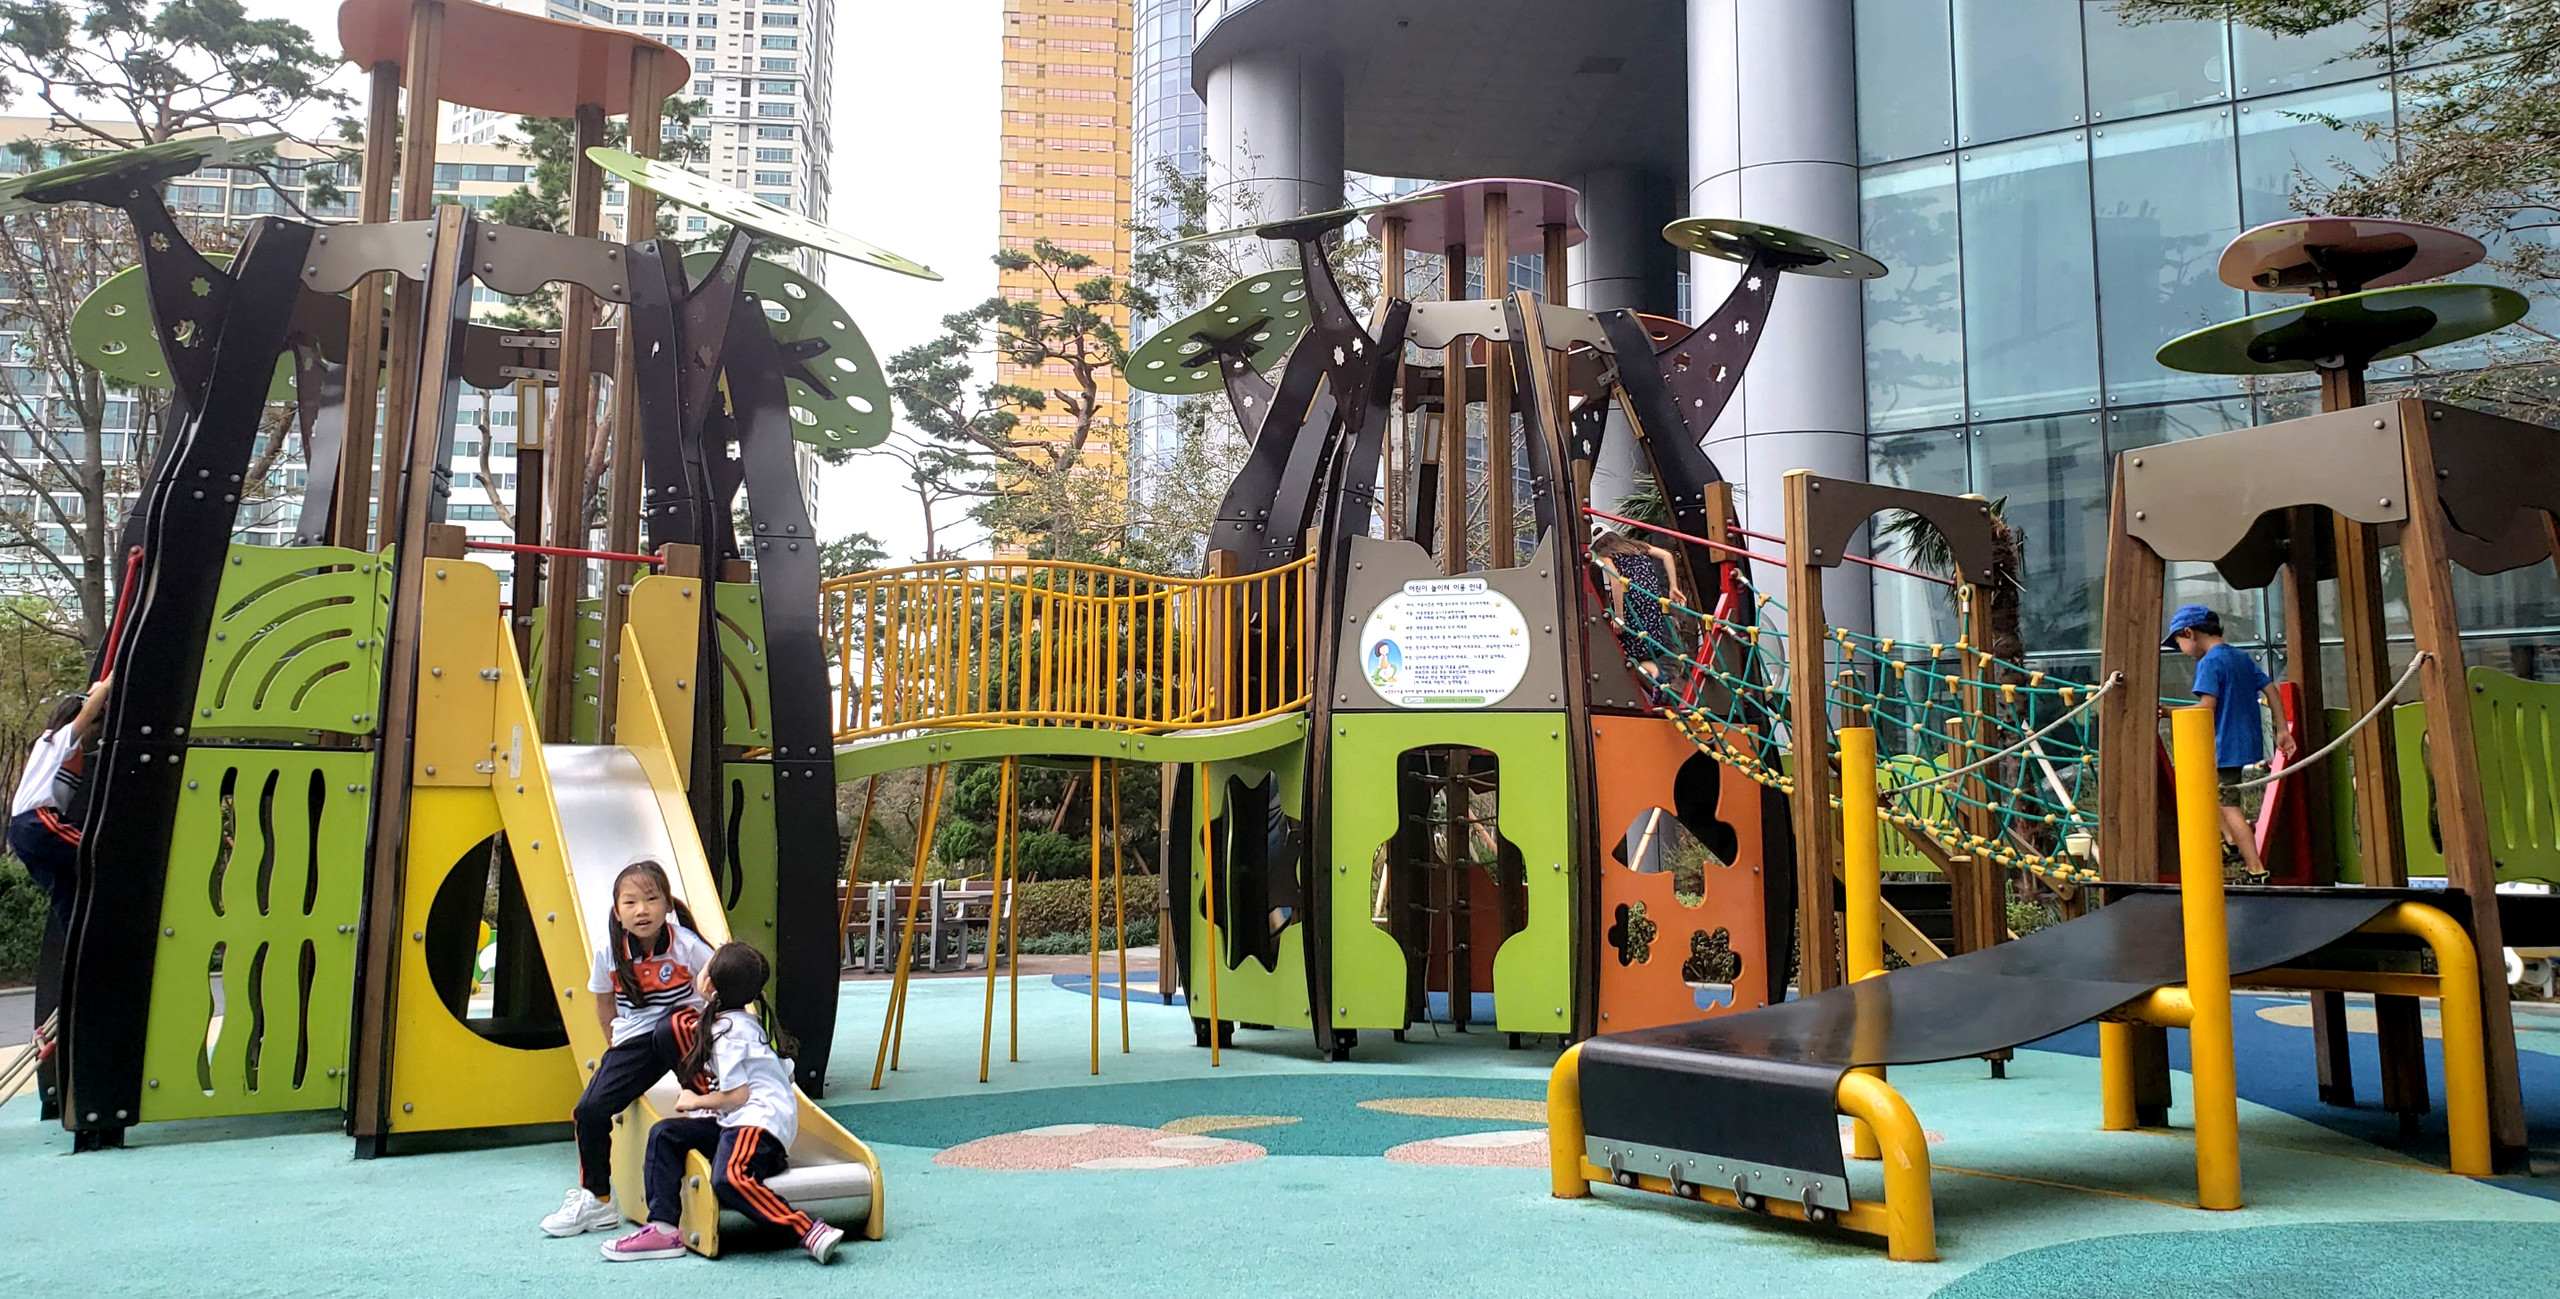 Playgrounds in Busan